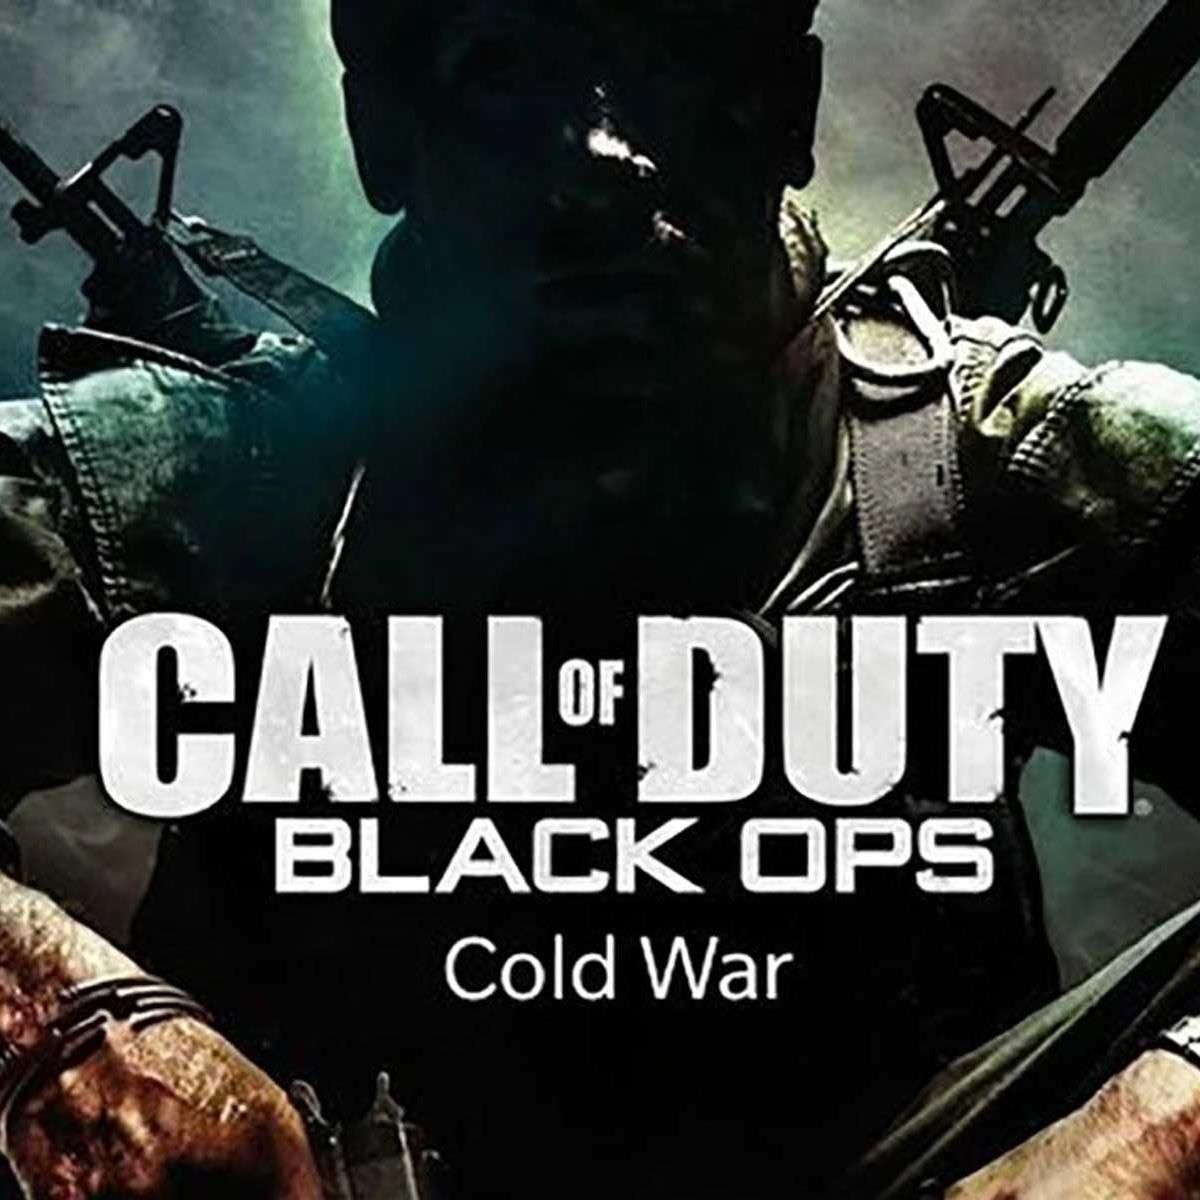 Alleged Call Of Duty Black Ops Cold War Pre Alpha Game Footage Leaks Hothardware